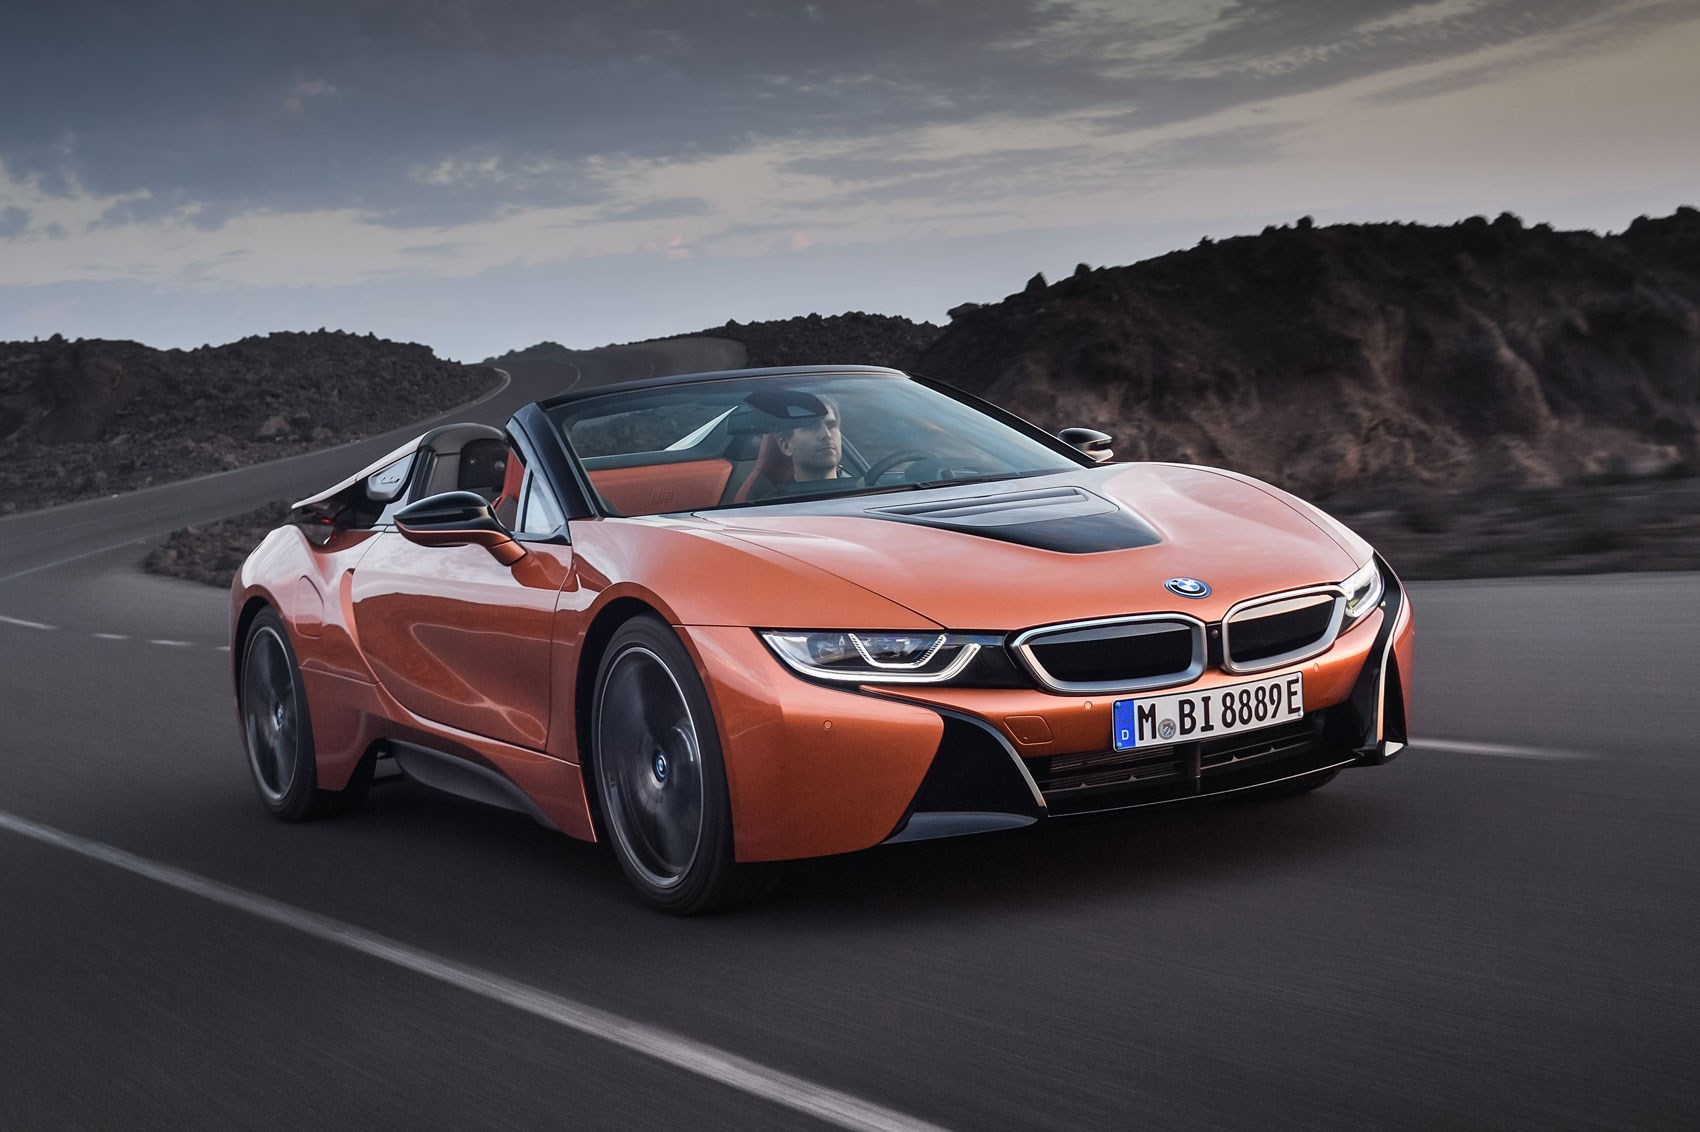 Soft Top Super Hybrid 2018 Bmw I8 Roadster Revealed By Car Magazine